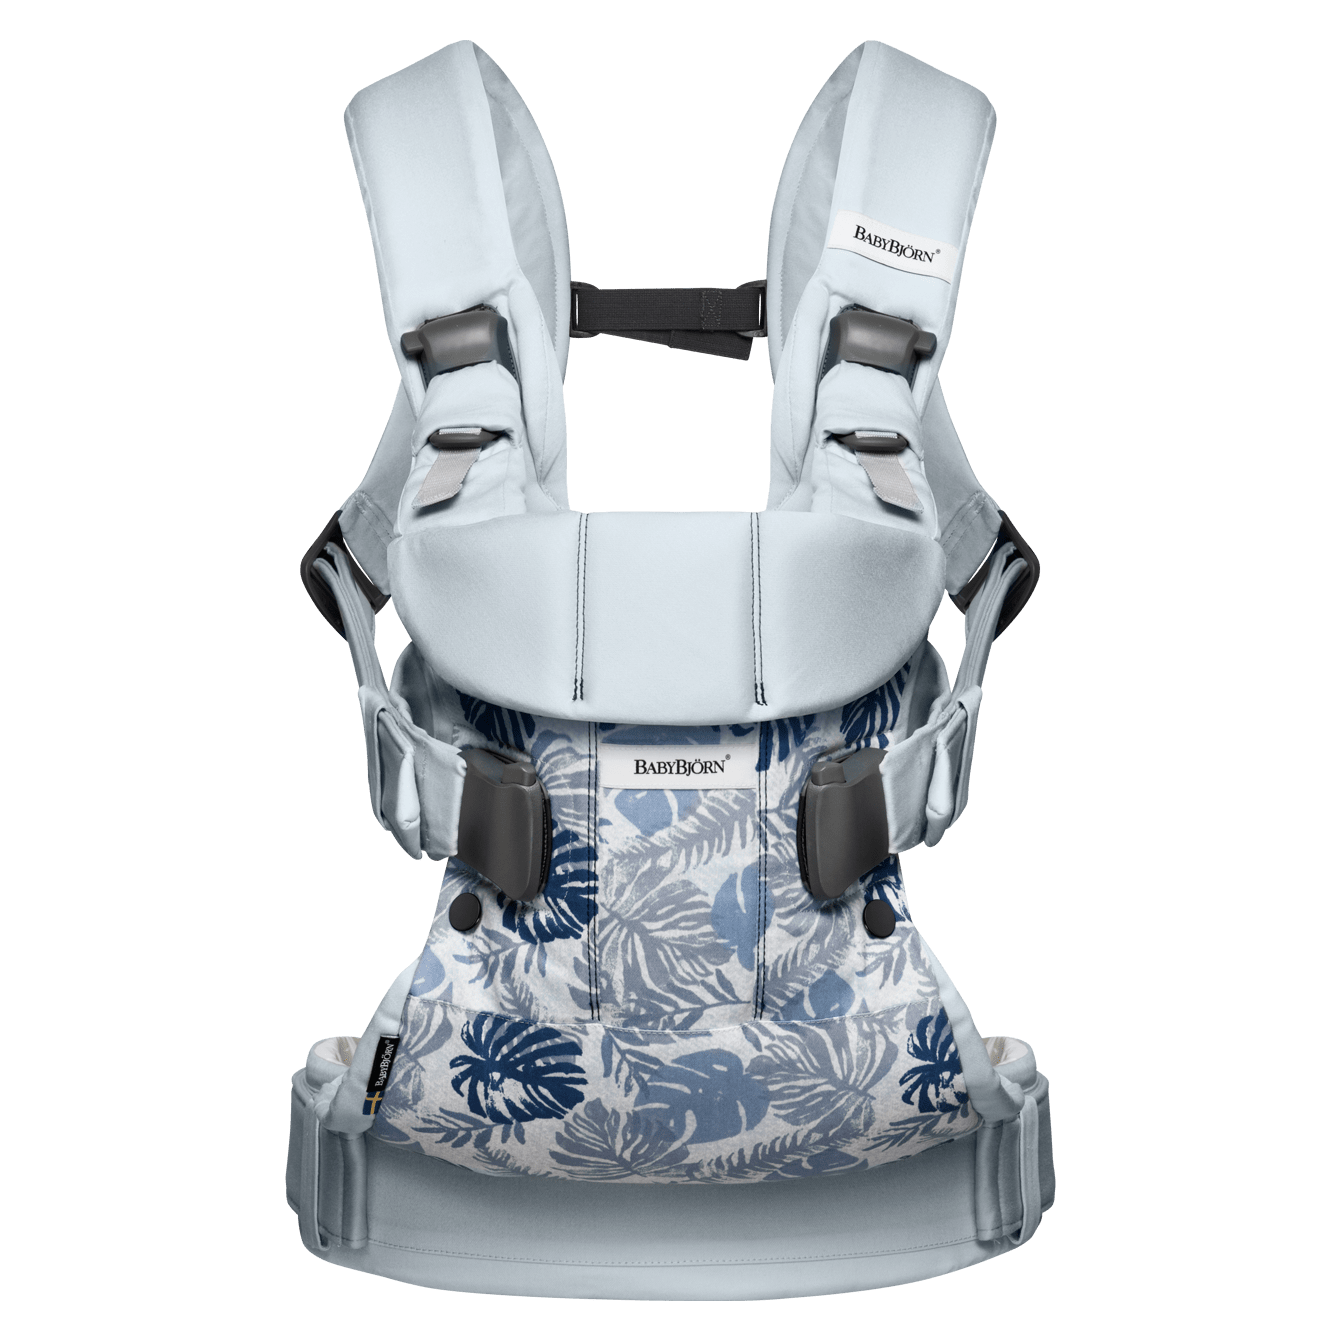 BABYBJÖRN Baby Carrier One in leaf print/pale blue cotton mix, an ergonomic baby carrier perfect for newborn up to 3 years.